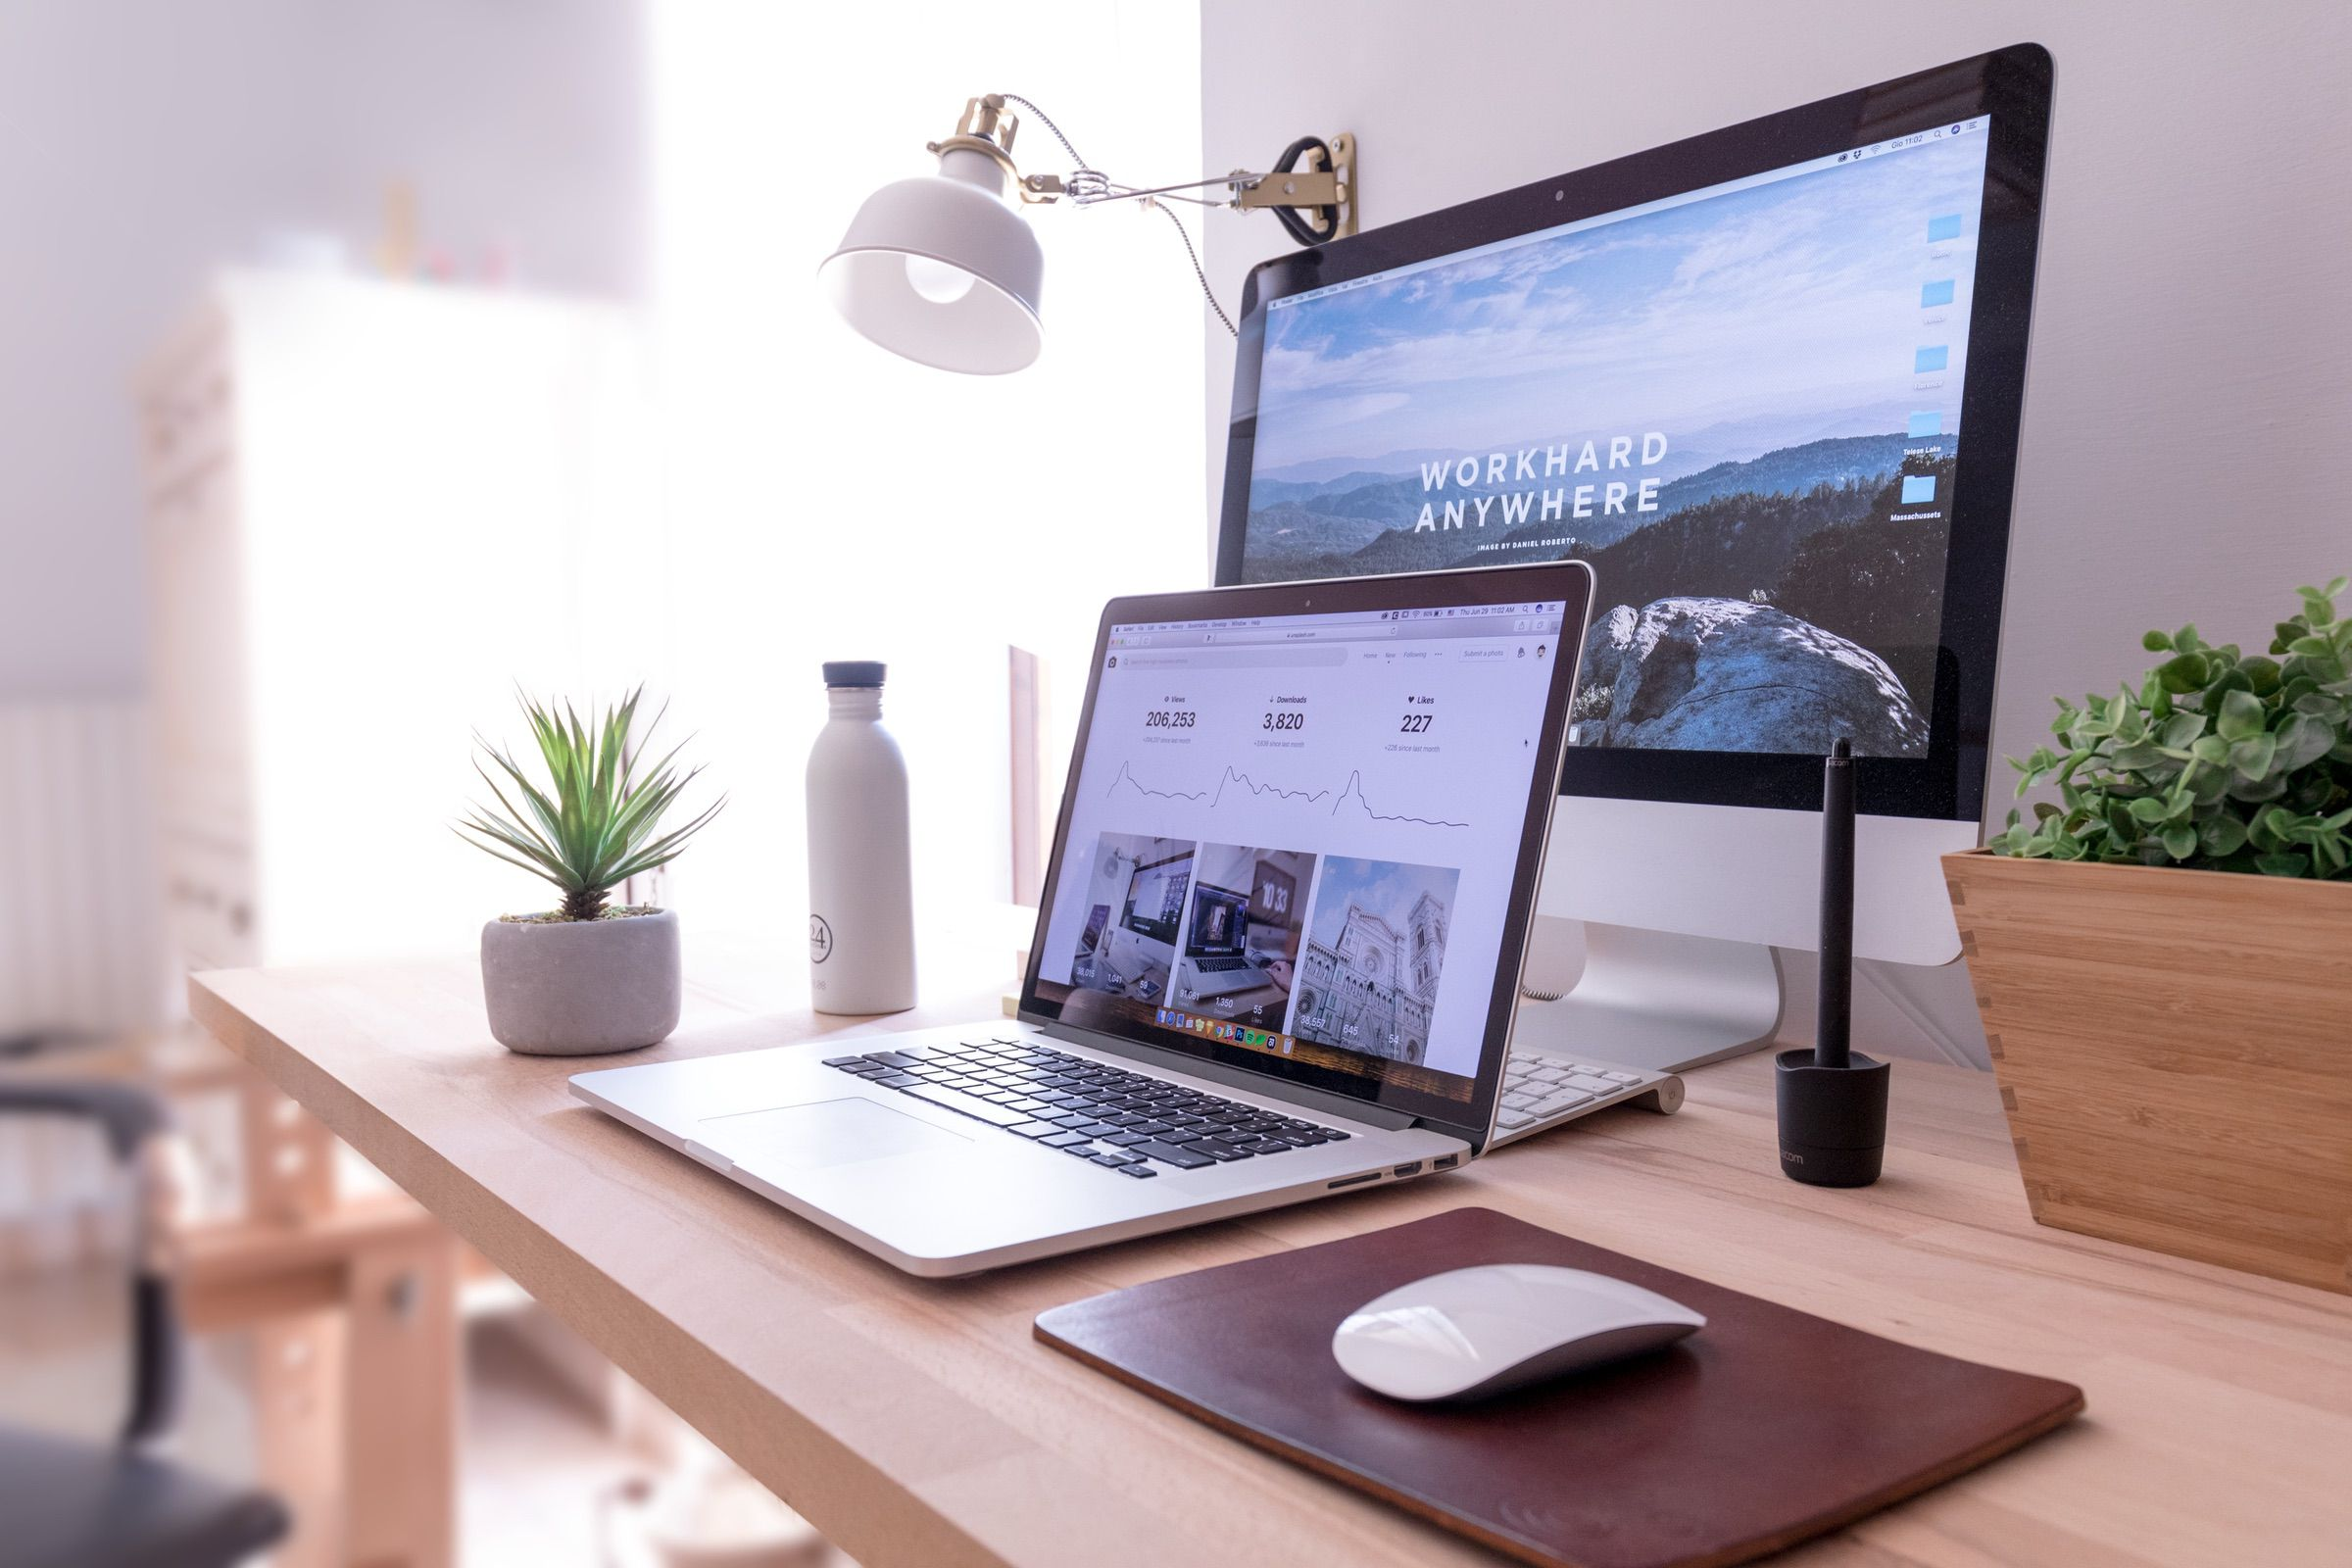 A laptop and a screen on a desk with a lamp and a plant